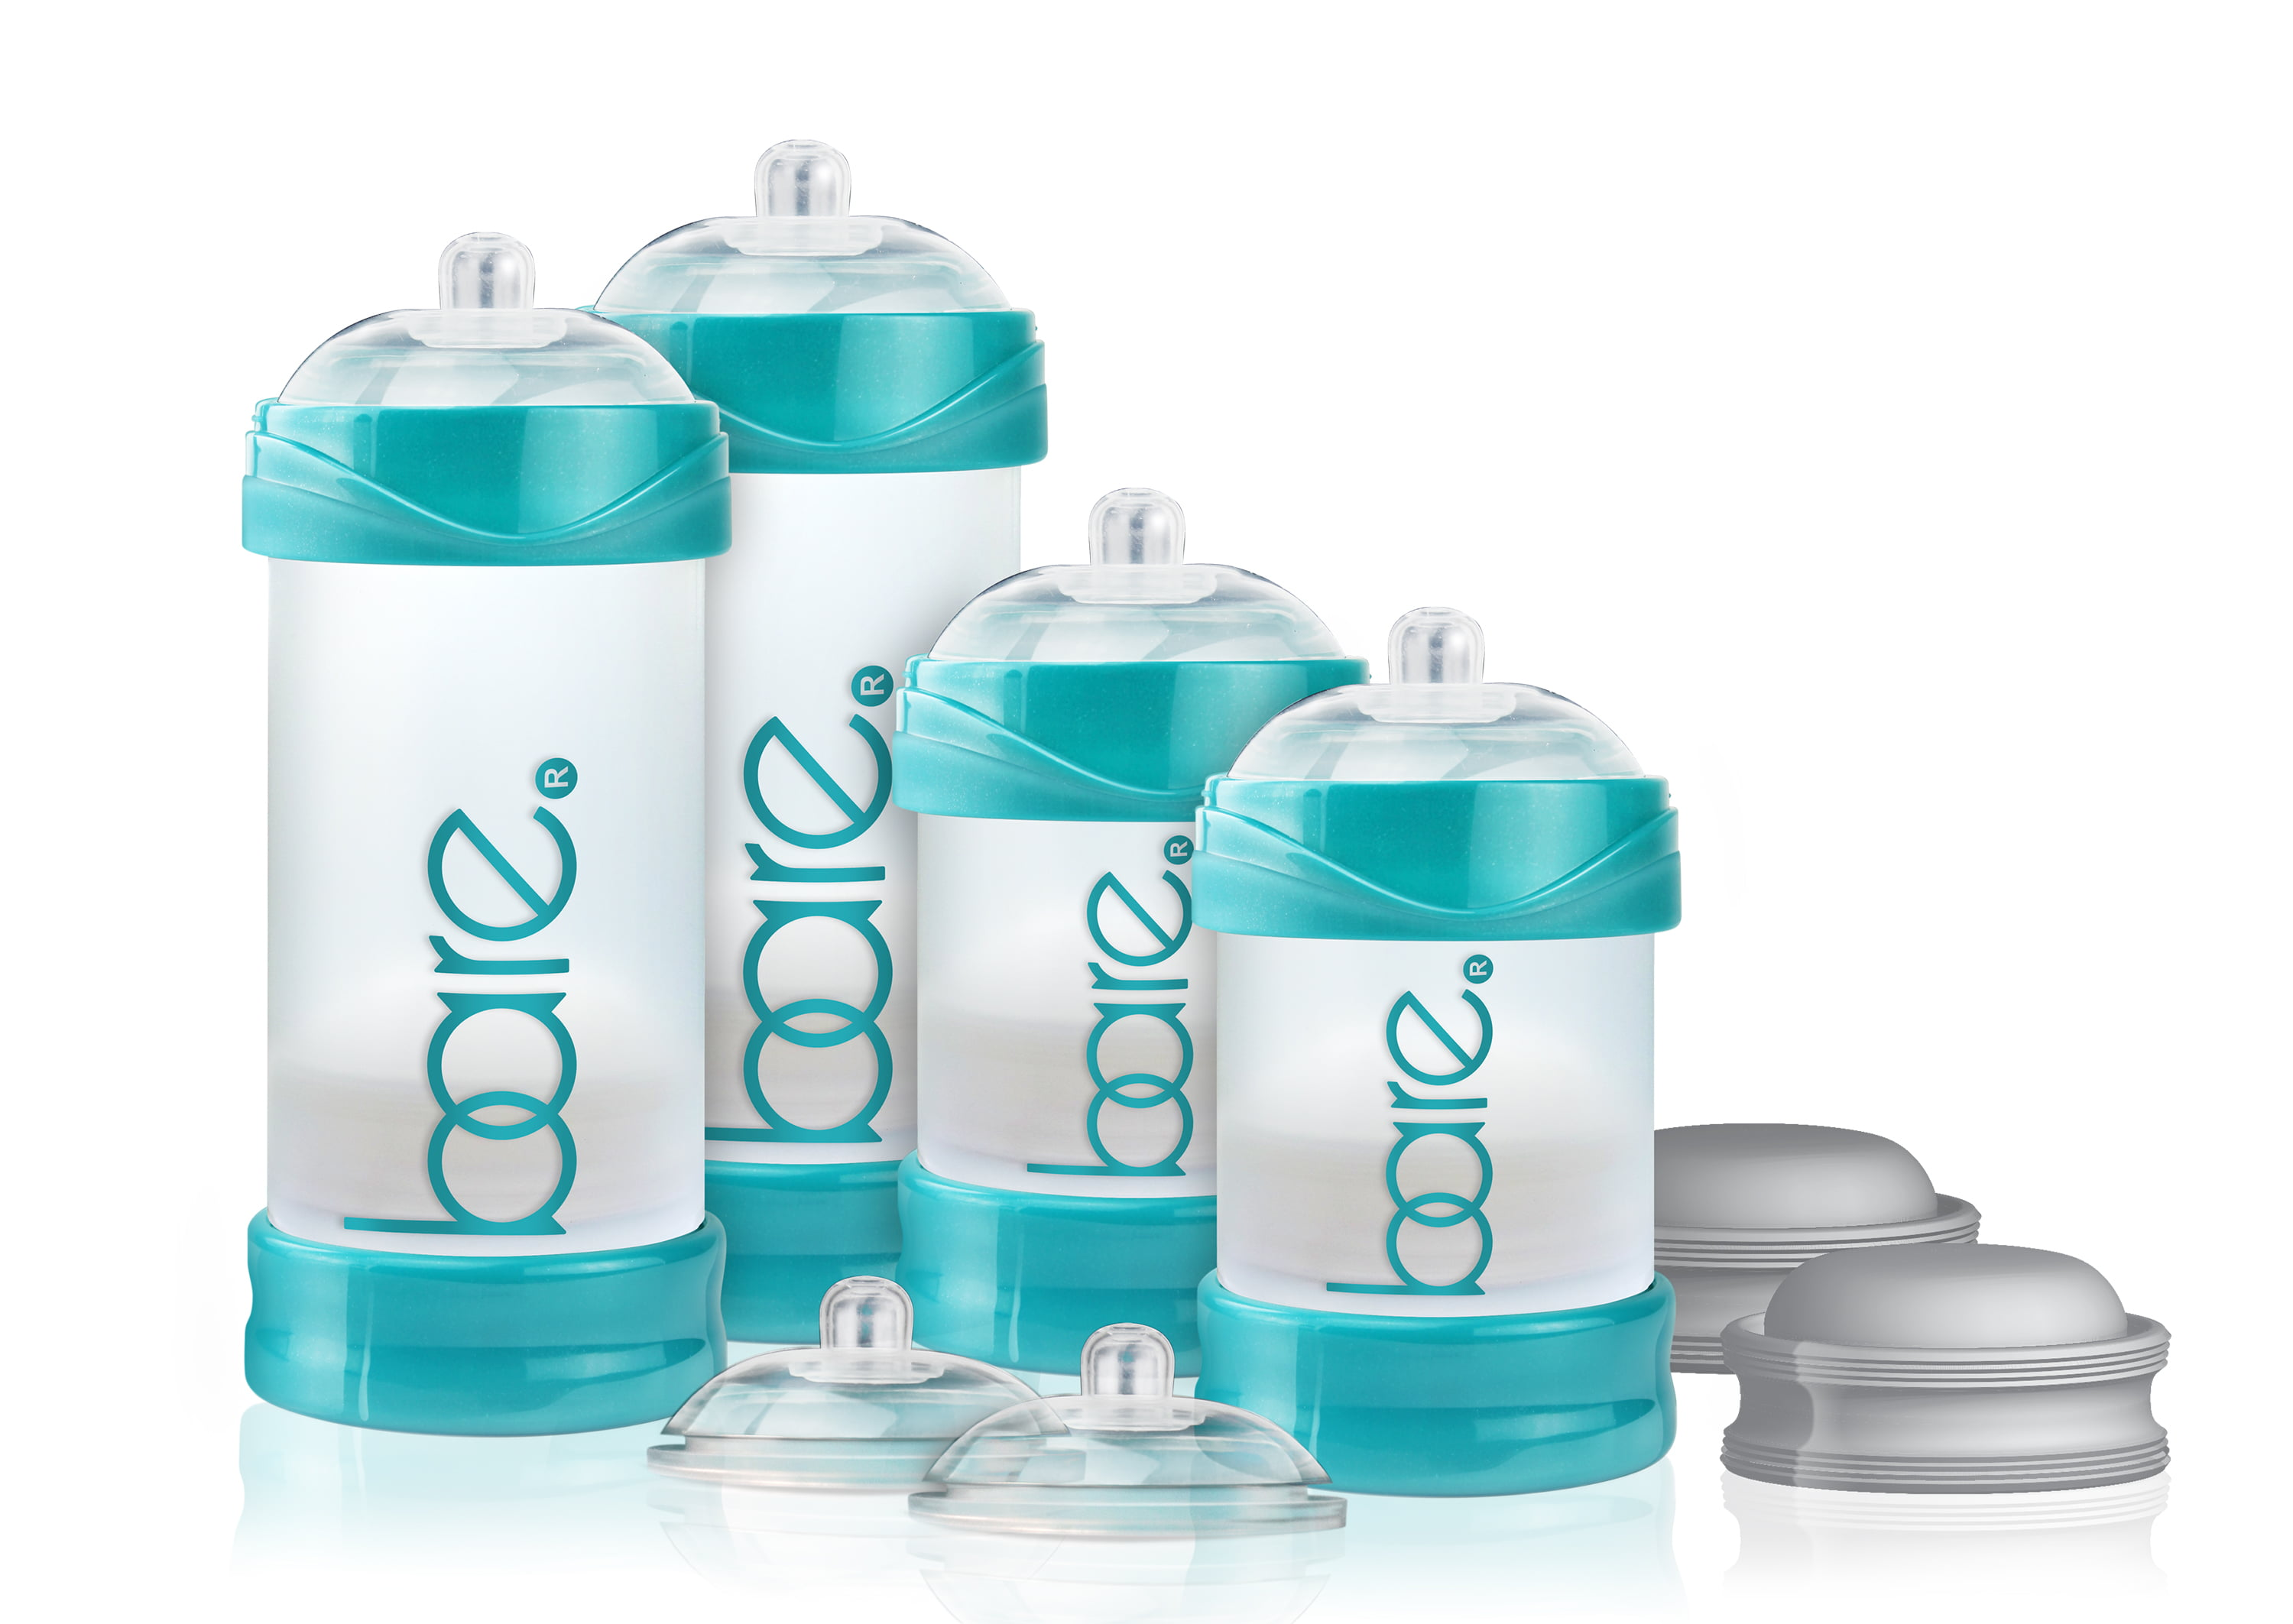 Bare Air-Free Feeding System Starter Set With Perfe-Latch Nipple. 0-24 Months by BARE AIR-FREE FEEDING SYSTEM